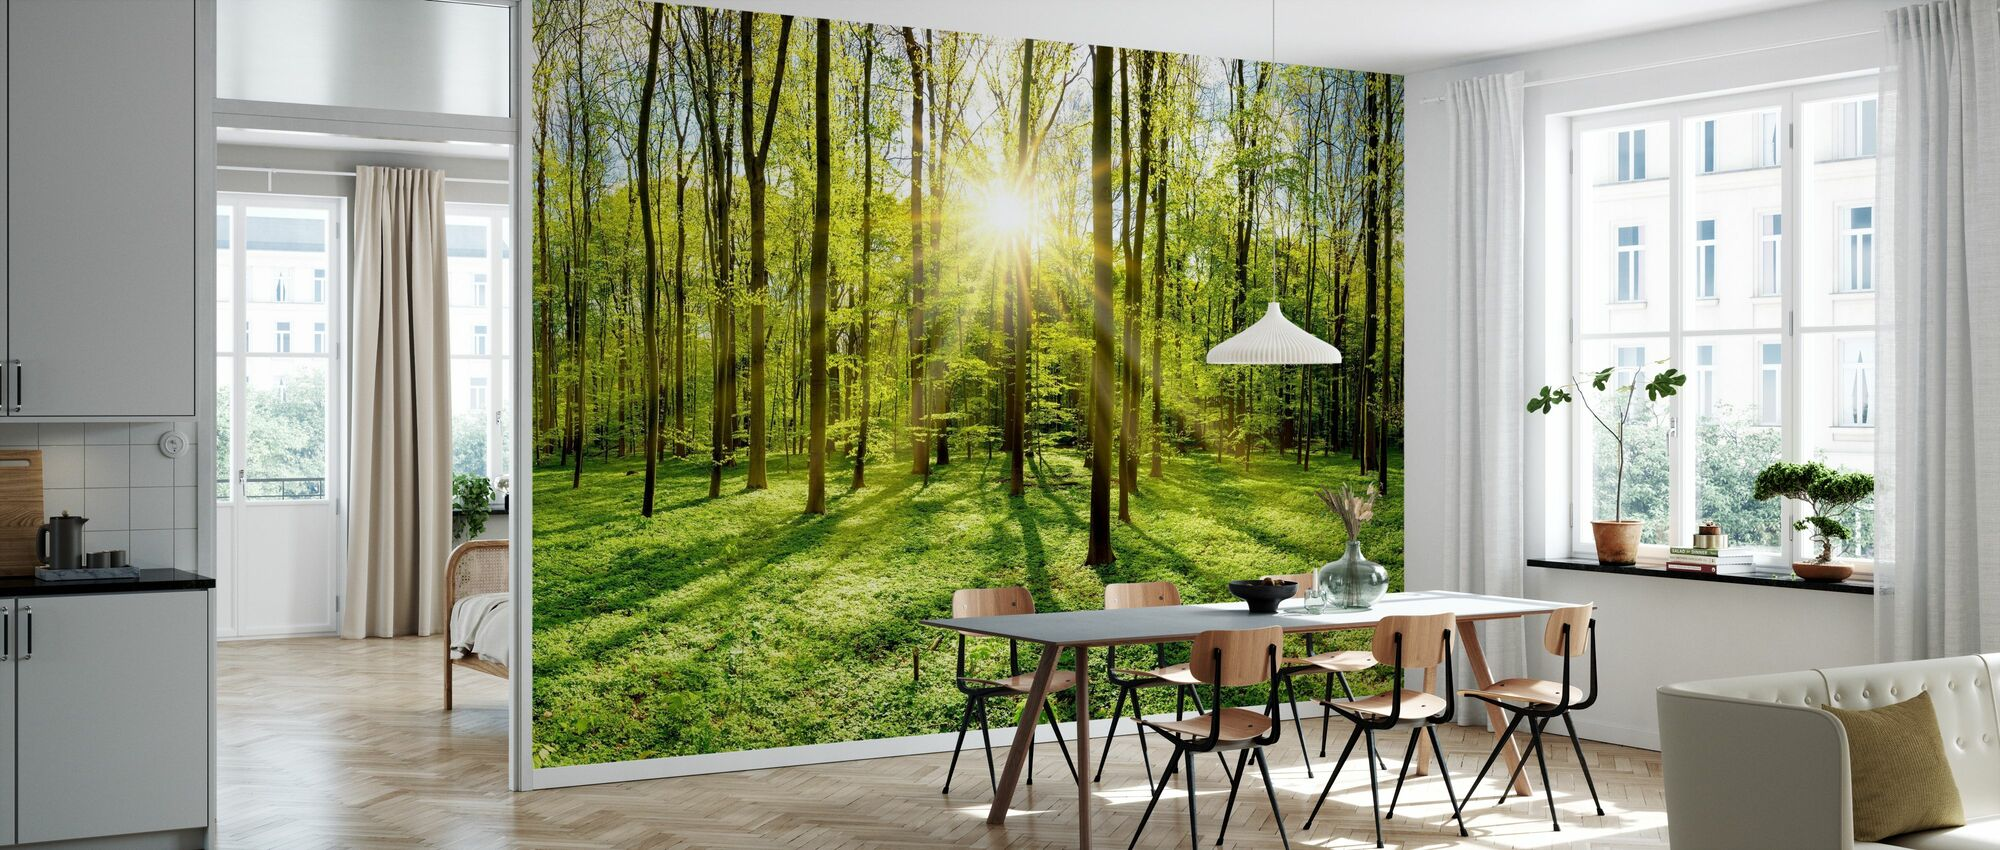 Bright Sunshine in the Forest - Wallpaper - Kitchen